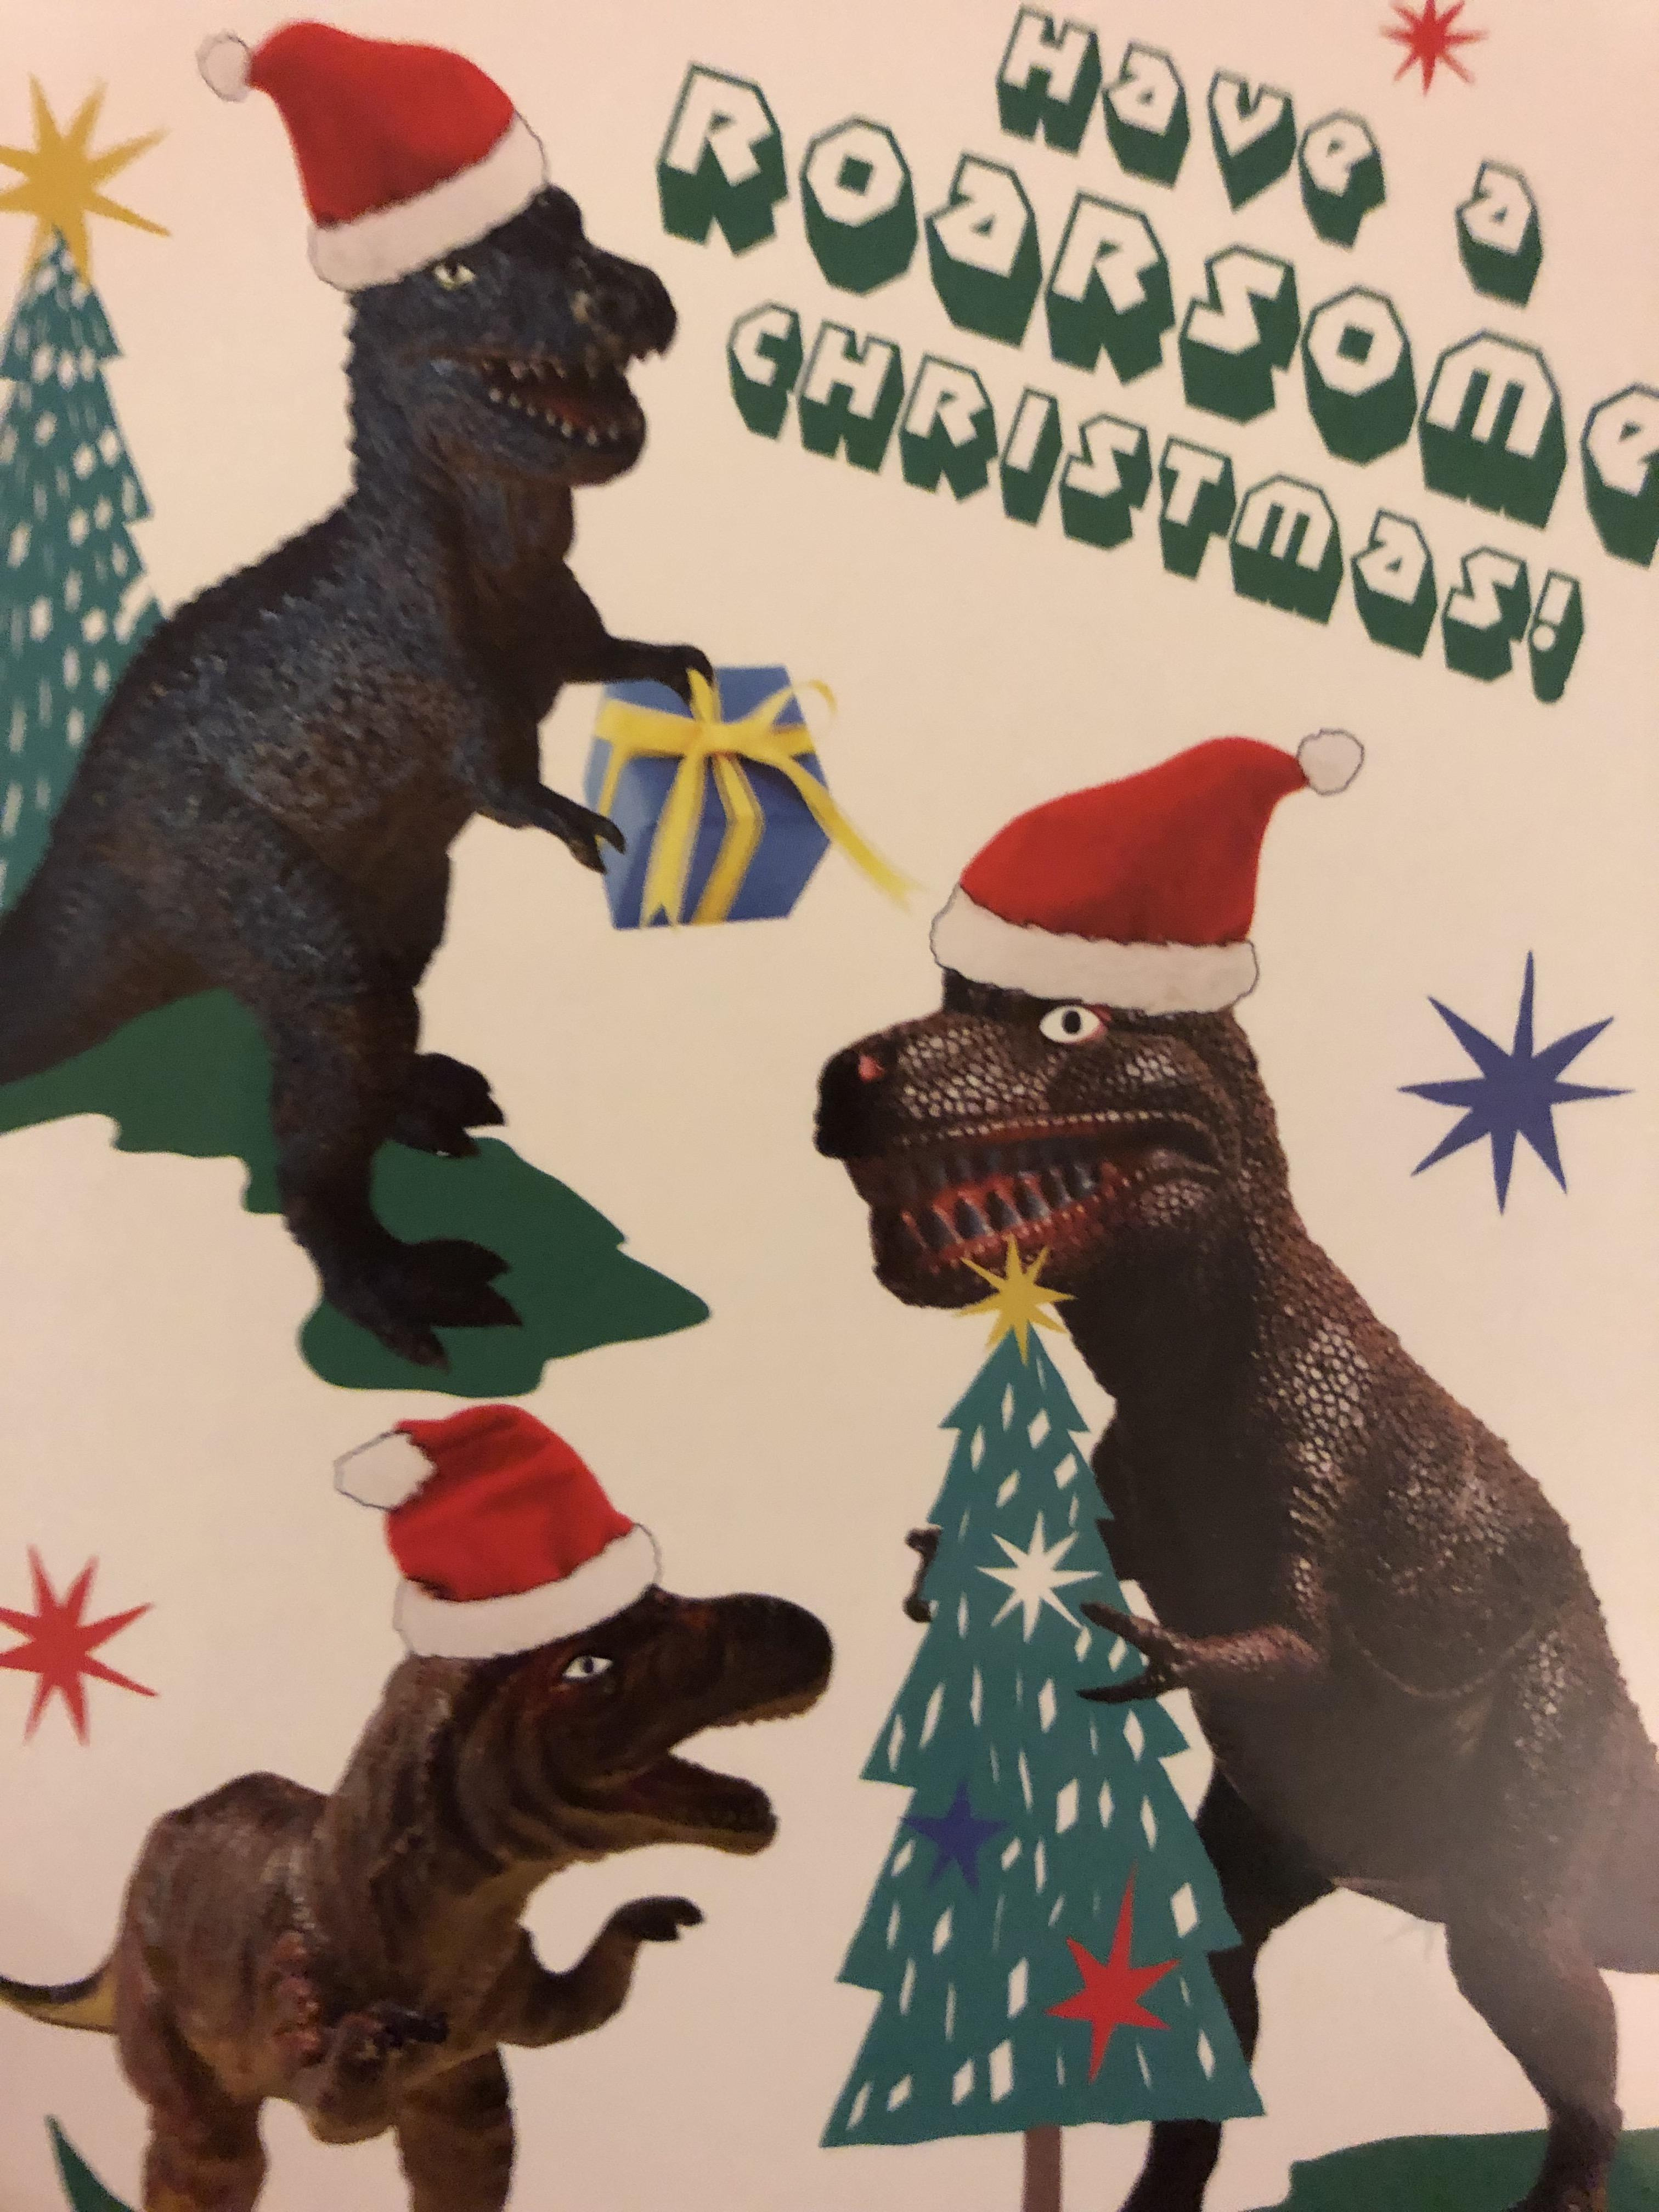 Funny Christmas Cards For Neighbours : funny, christmas, cards, neighbours, Christmas, Neighbour, Me...., Funny